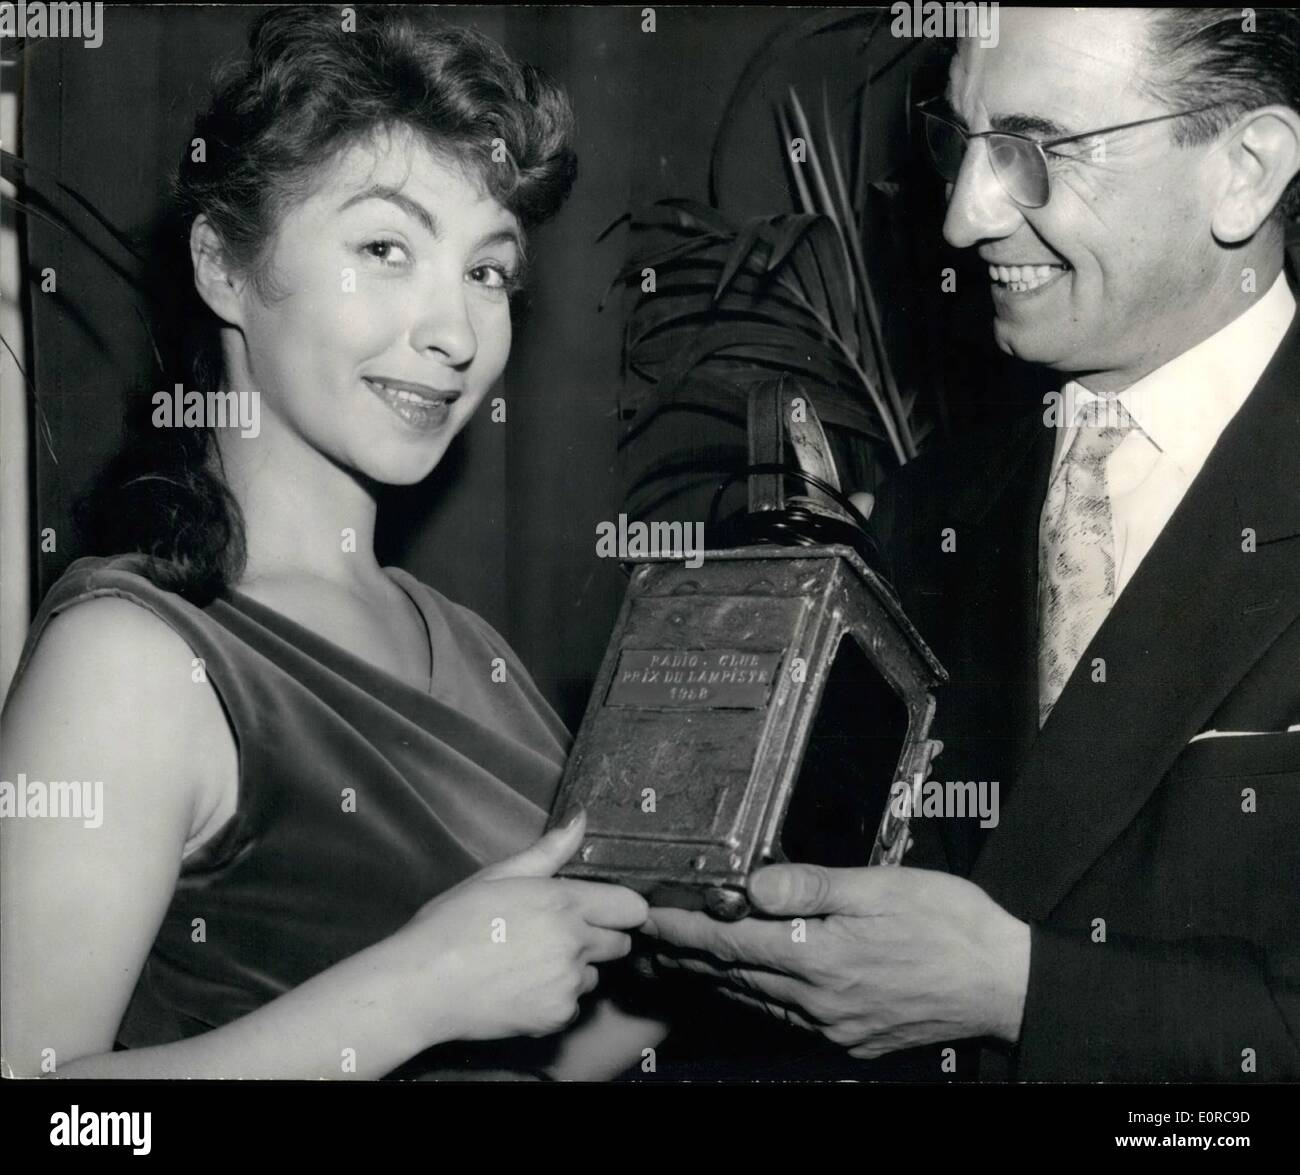 Dec. 12, 1958 - Railwaymen award prize to Belgian singer: Members of the Railwaymen's Radio Club awarded the ''Prix de Lampiste'' to a young Belgian singer Dora Neri today. ''Lampiste'' is the French for signal man, a word generally used  as a reference to an obscure person who always takes the blame when somethin wrong happens. The prize goes to reward an unknown singer of the talent. Photo shows M. Wiart, vice-chairman of the Radio Club, handing the prize to Dora Neri. - Stock Image